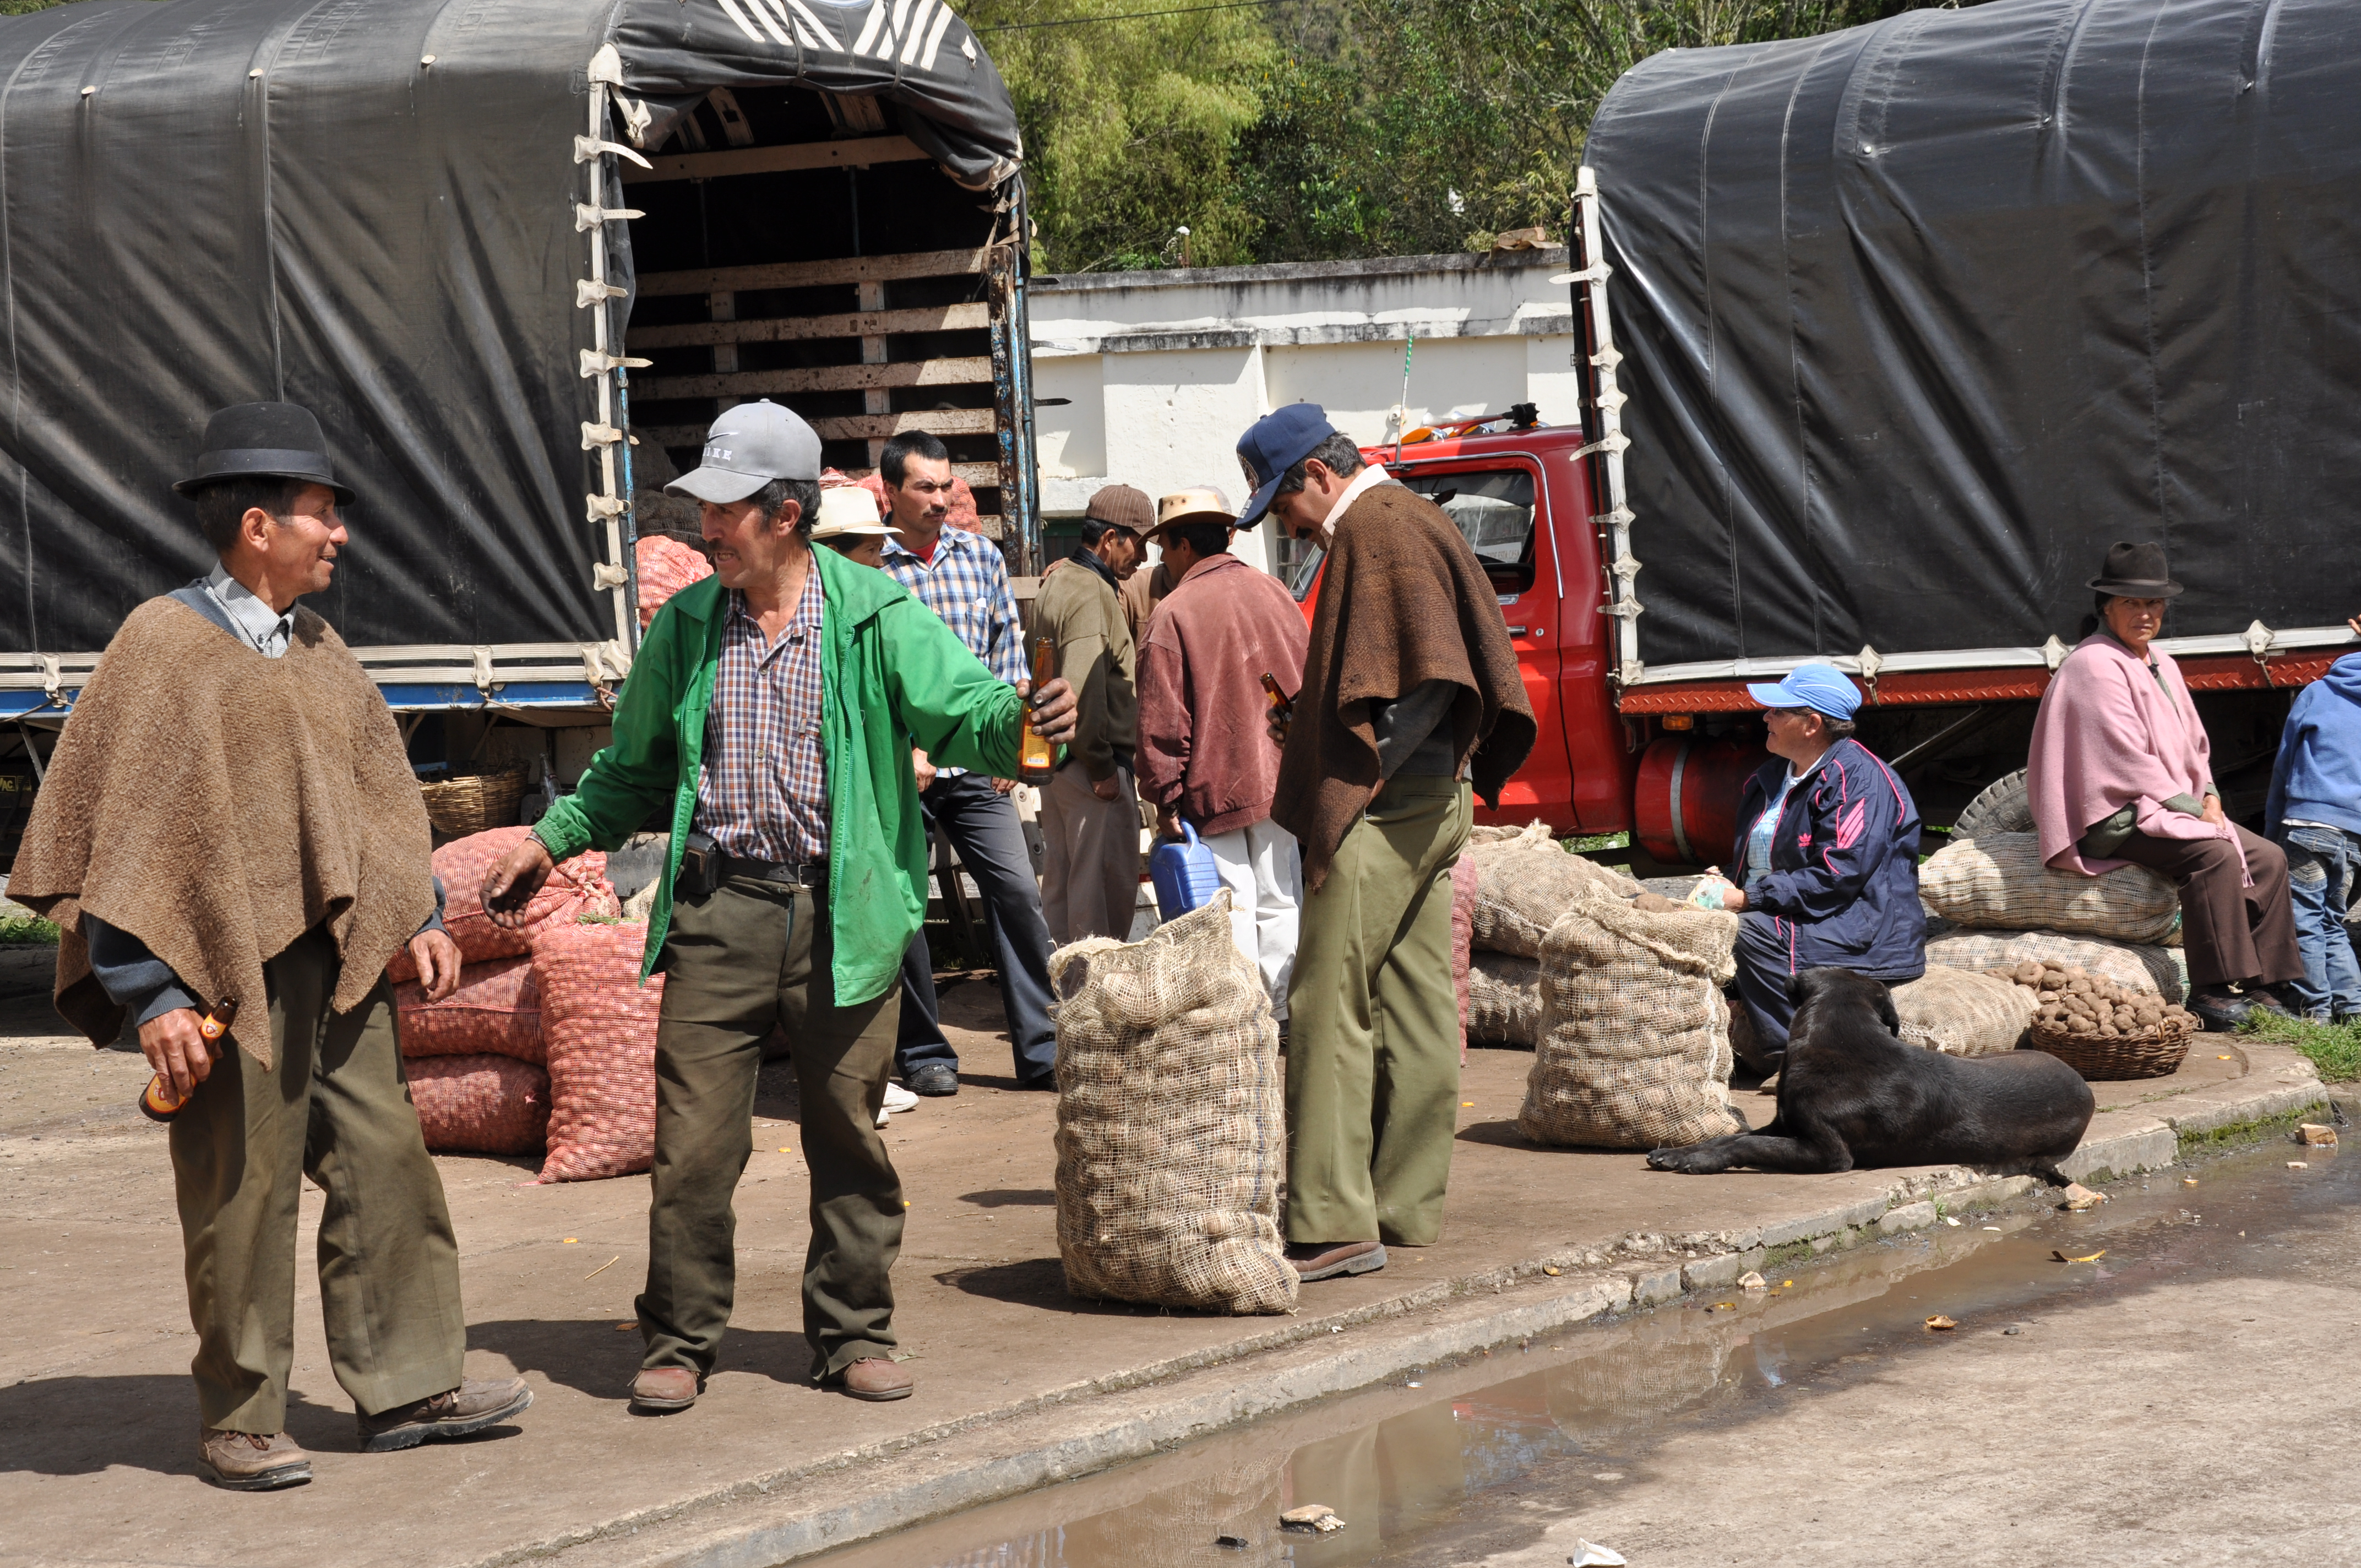 Farmers preparing to sell potatoes in Colombia.